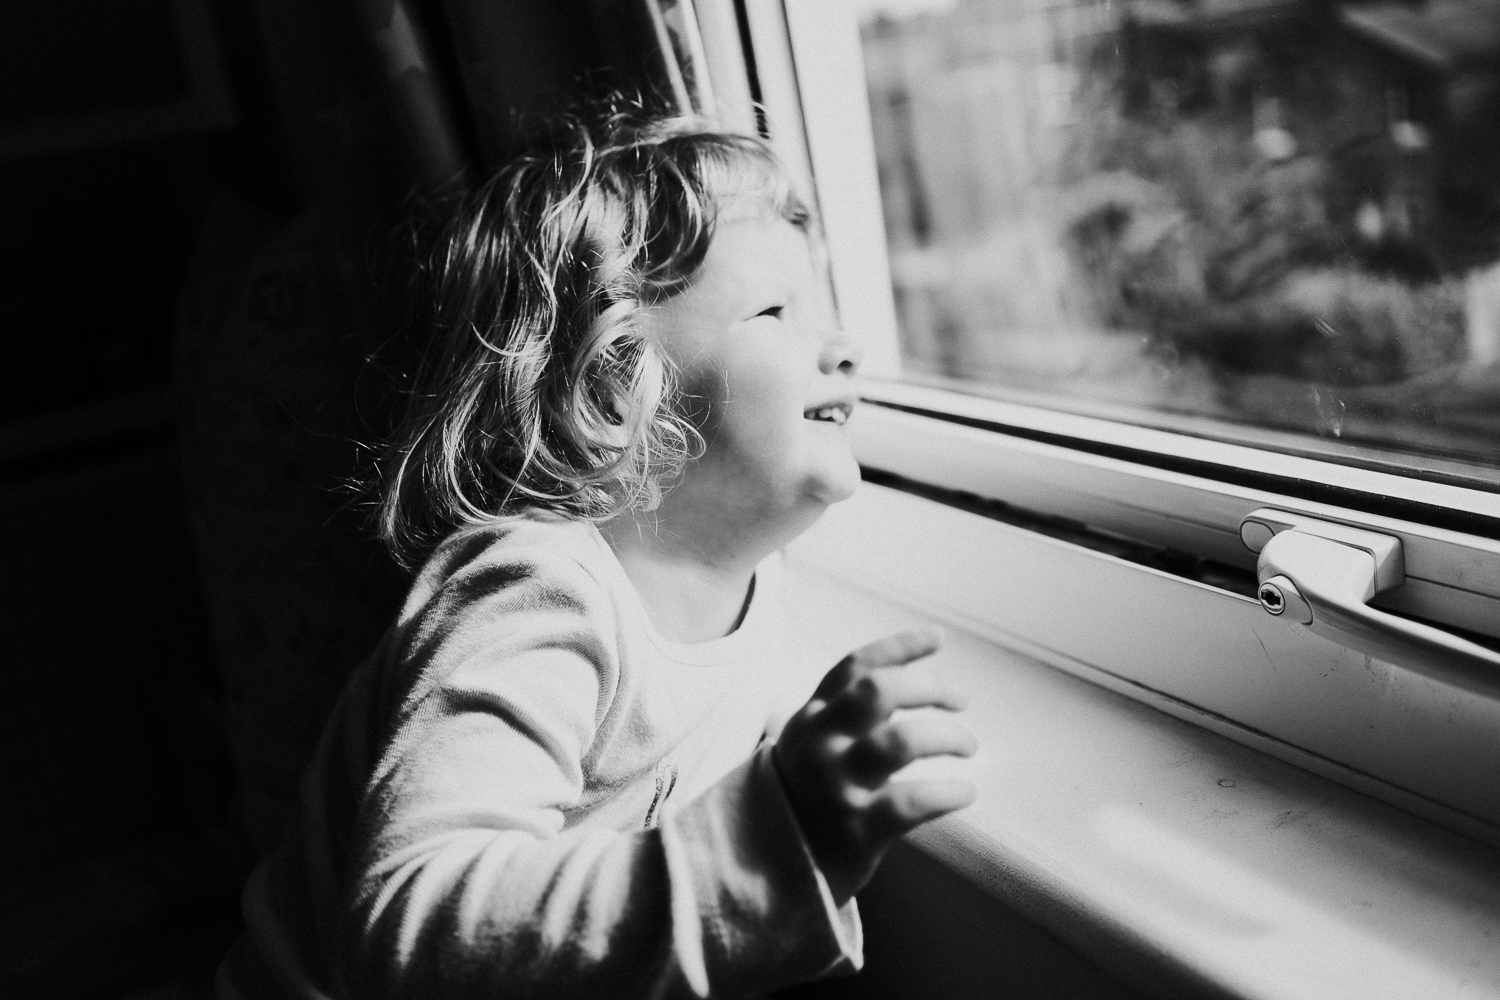 sibling family photography 2020 black and white portrait young girl at window